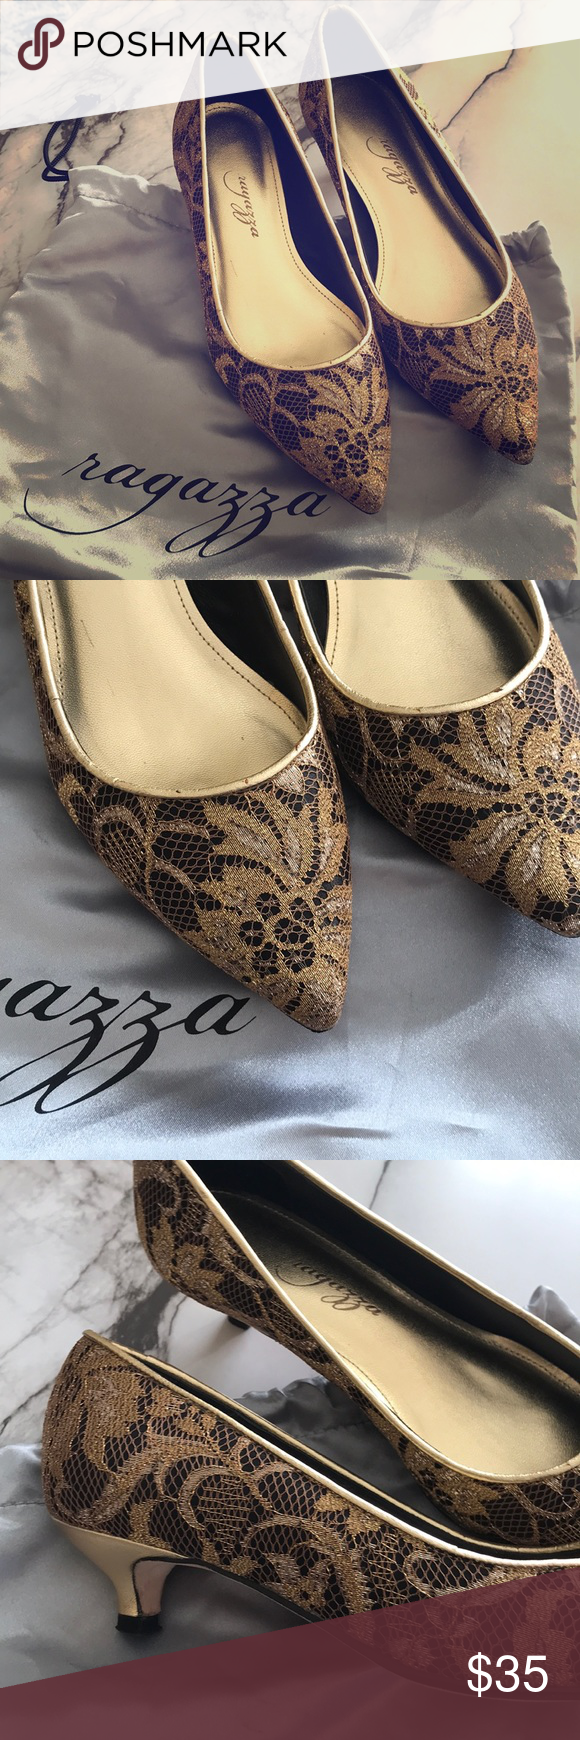 Beautiful Gold And Black Ragazza Kitten Heels Size 6 Brand Ragazza Very Gently Used Worn Once Beautiful Gold Floral Desi Black Kitten Heels Heels Kitten Heels